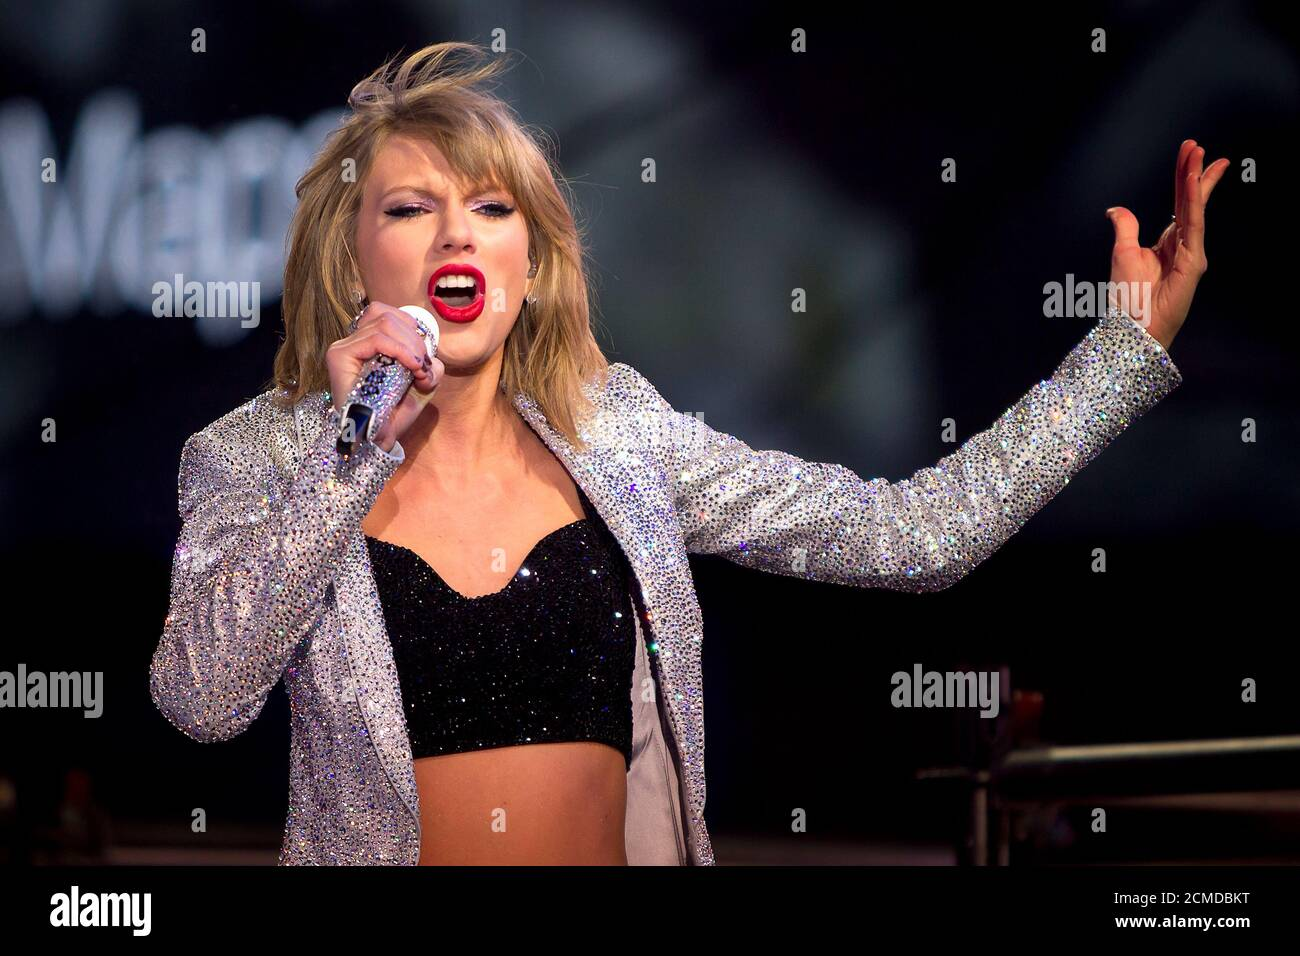 Taylor Swift Performs In Times Square On New Year S Eve In New York New York U S December 31 2014 Reuters Carlo Allegri File Photo Stock Photo Alamy